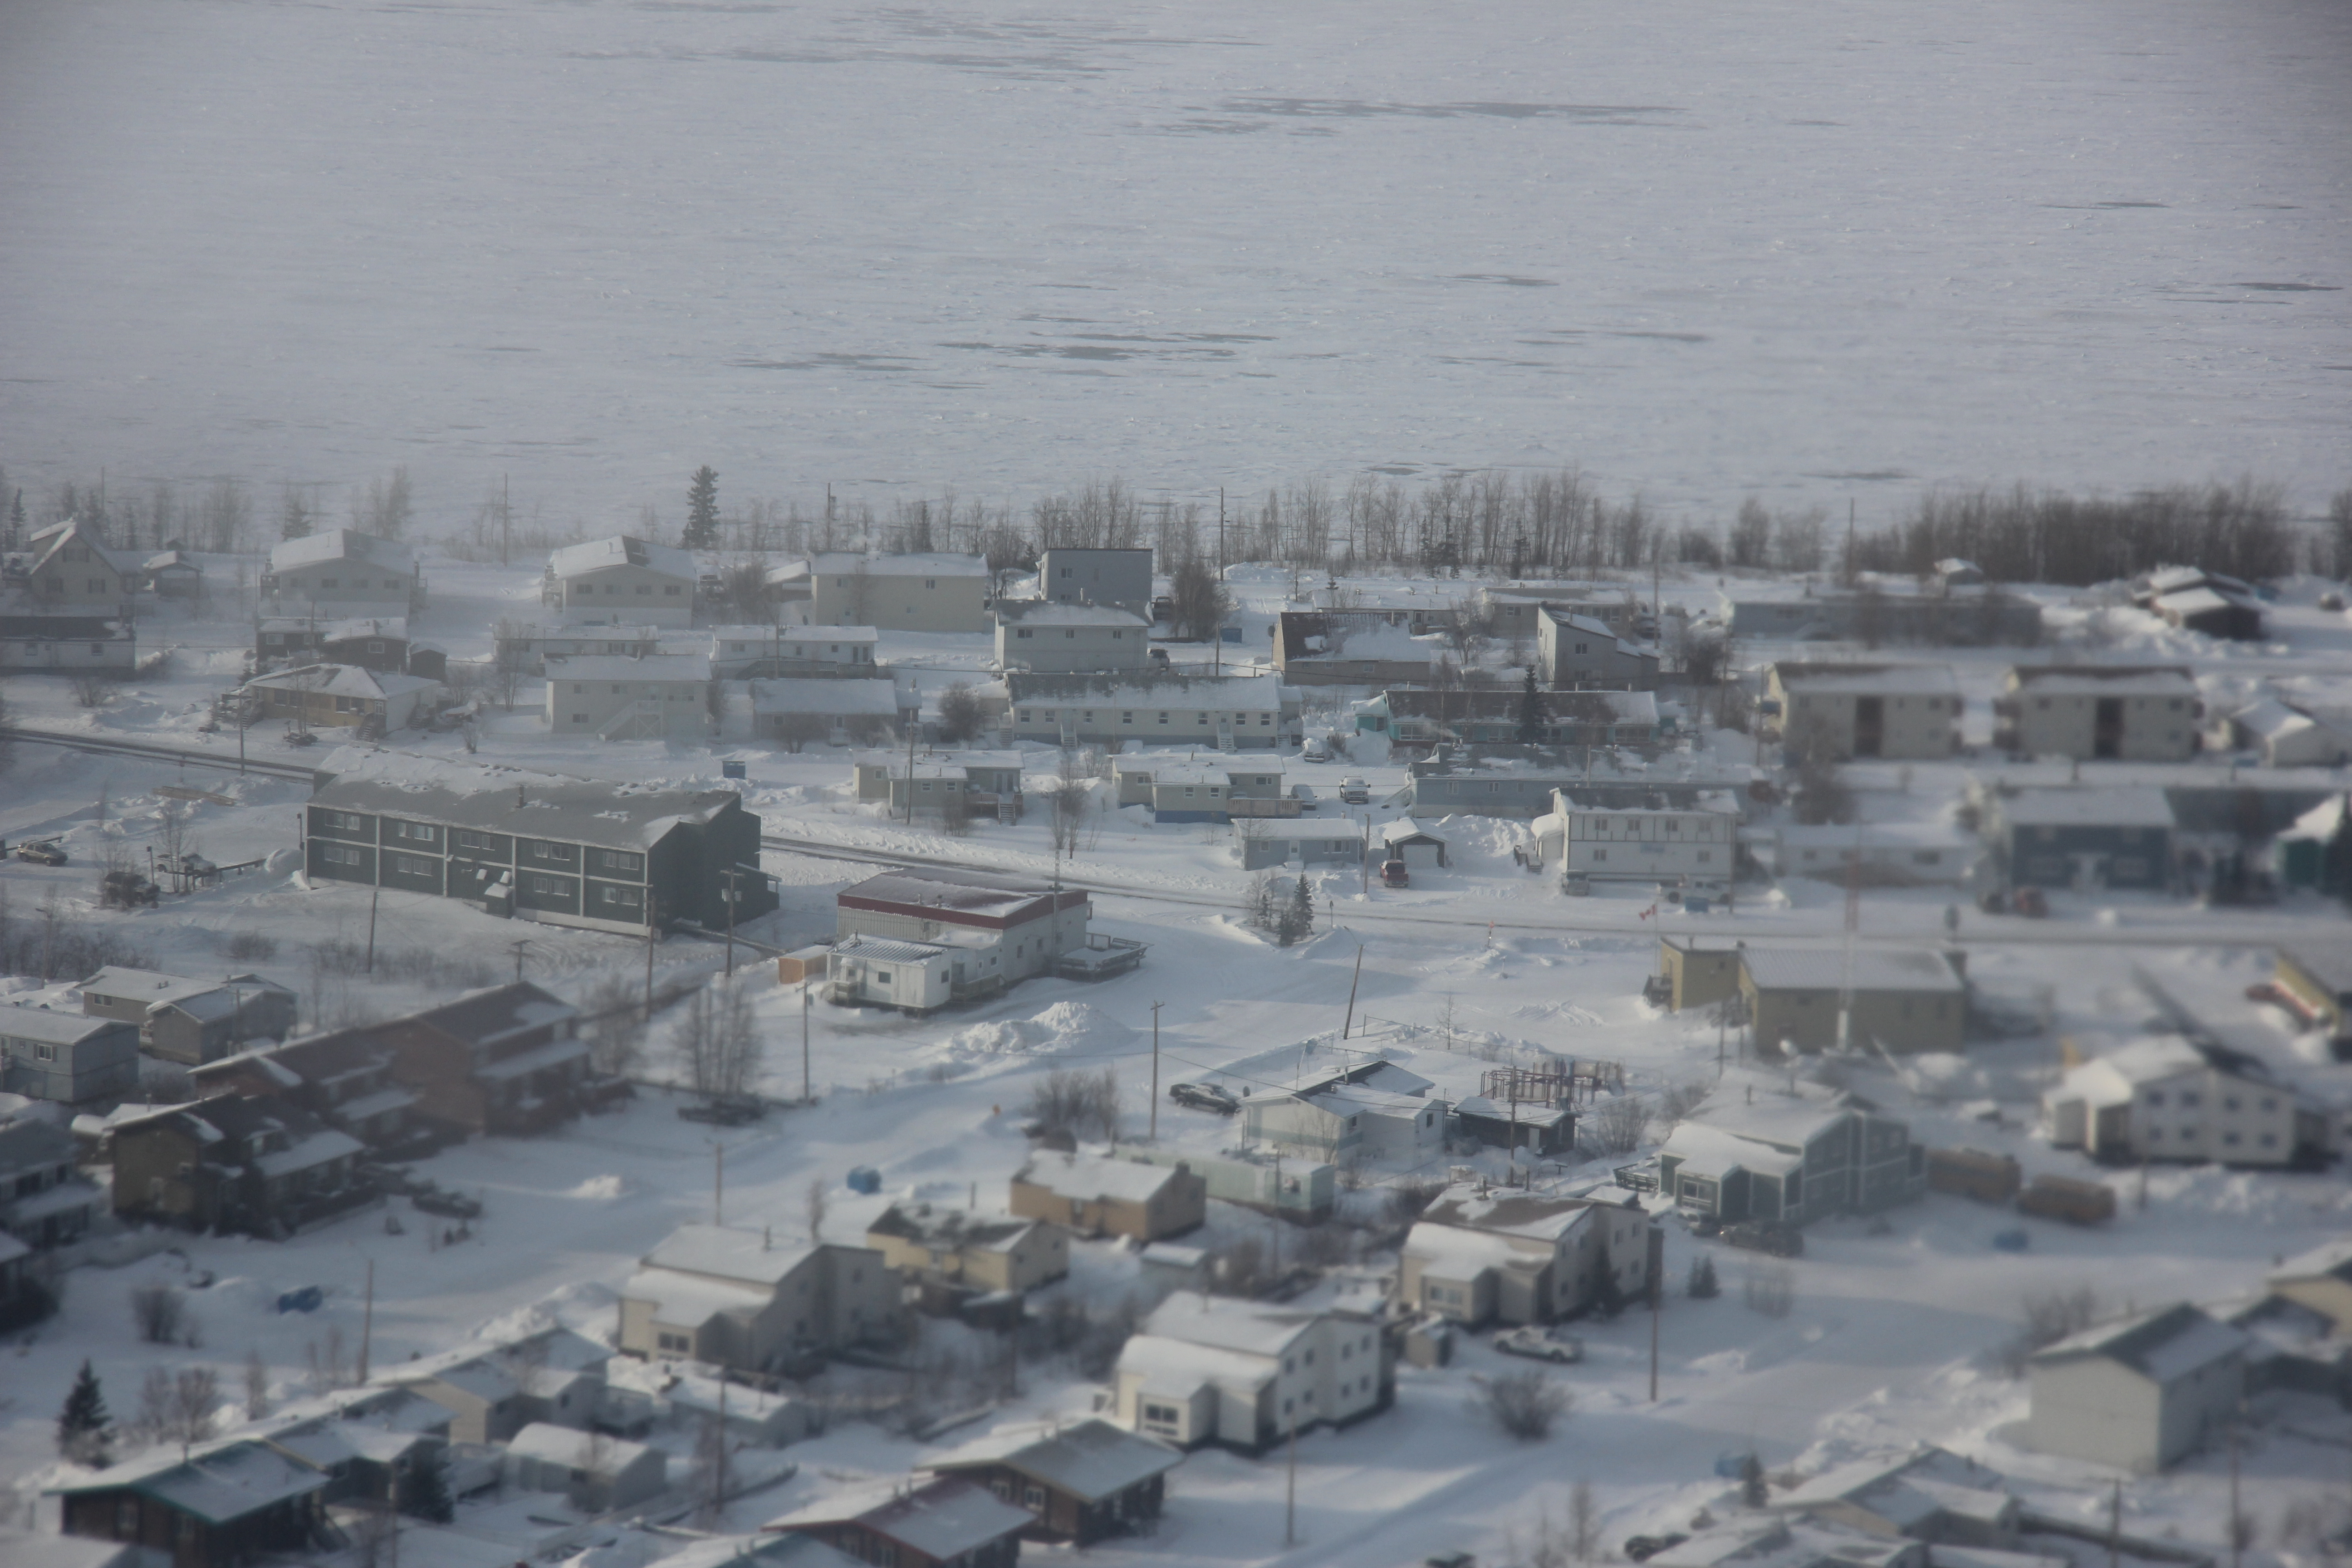 The town of Norman Wells is facing a doubling of natural gas prices. (Eilis Quinn / Eye on the Arctic)